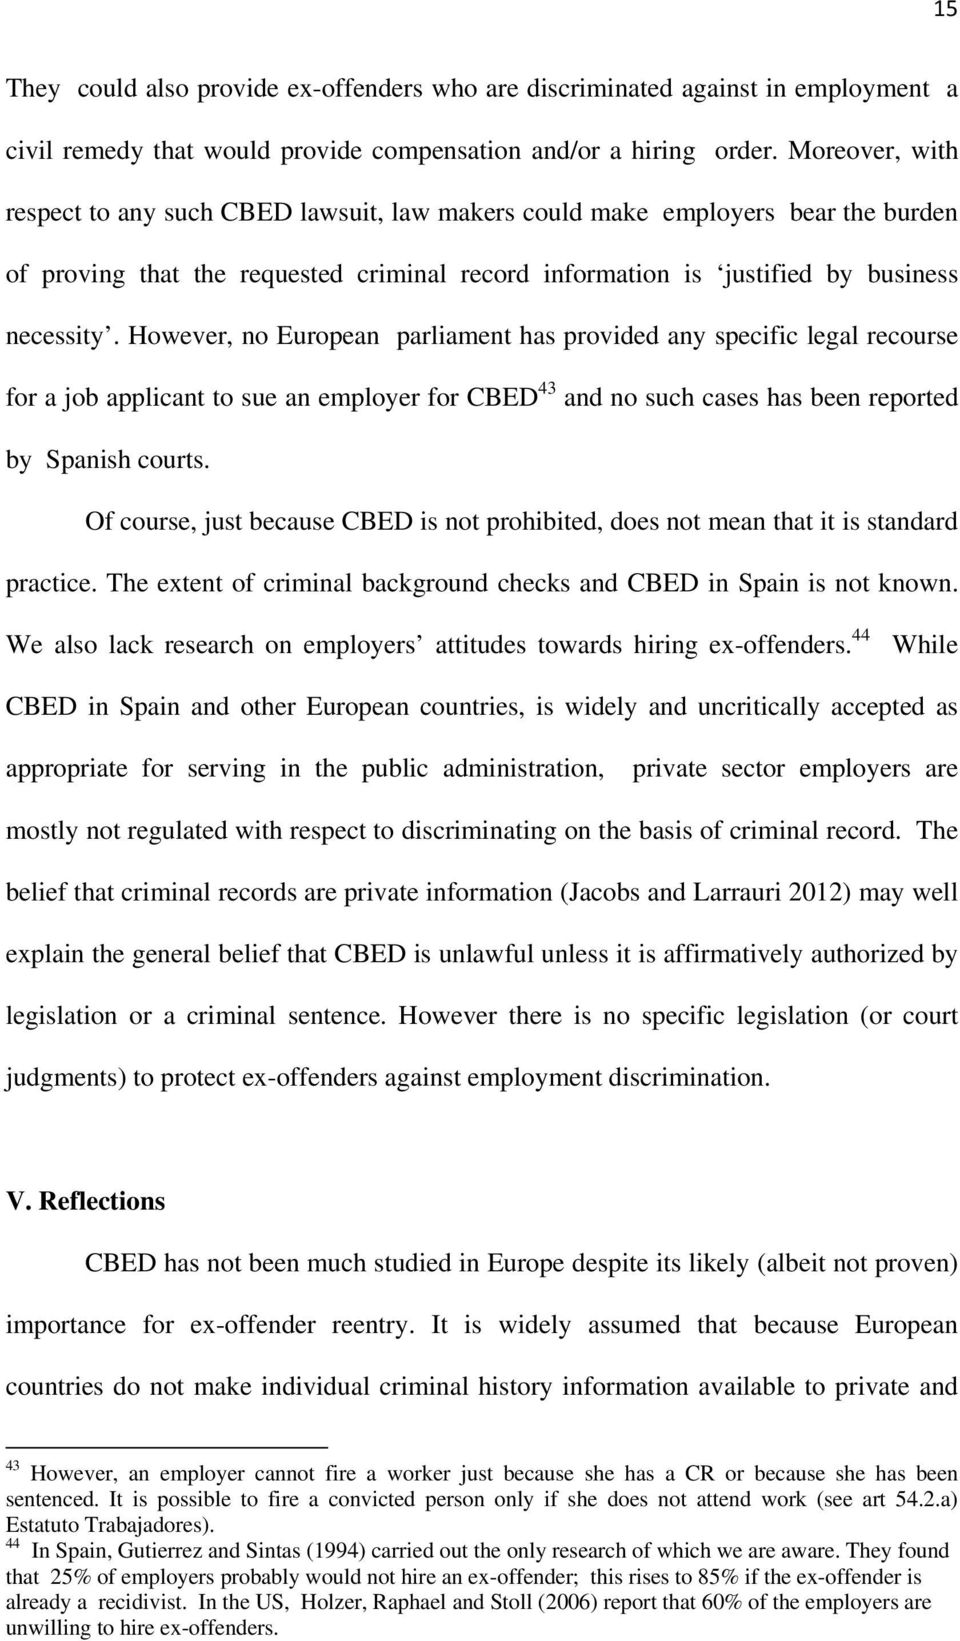 However, no European parliament has provided any specific legal recourse for a job applicant to sue an employer for CBED 43 and no such cases has been reported by Spanish courts.